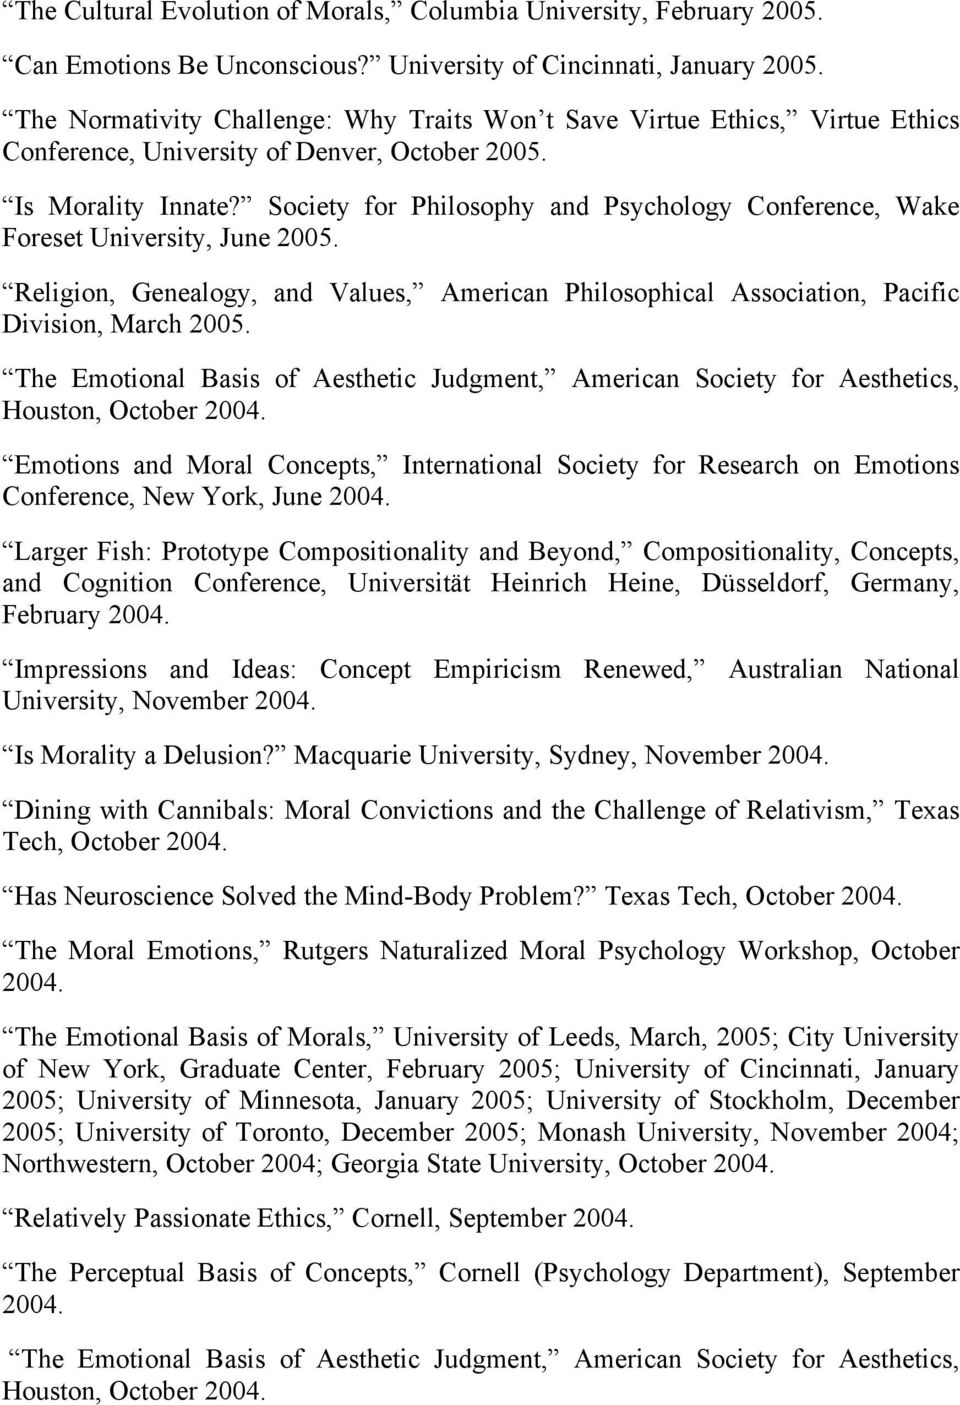 Society for Philosophy and Psychology Conference, Wake Foreset University, June 2005. Religion, Genealogy, and Values, American Philosophical Association, Pacific Division, March 2005.